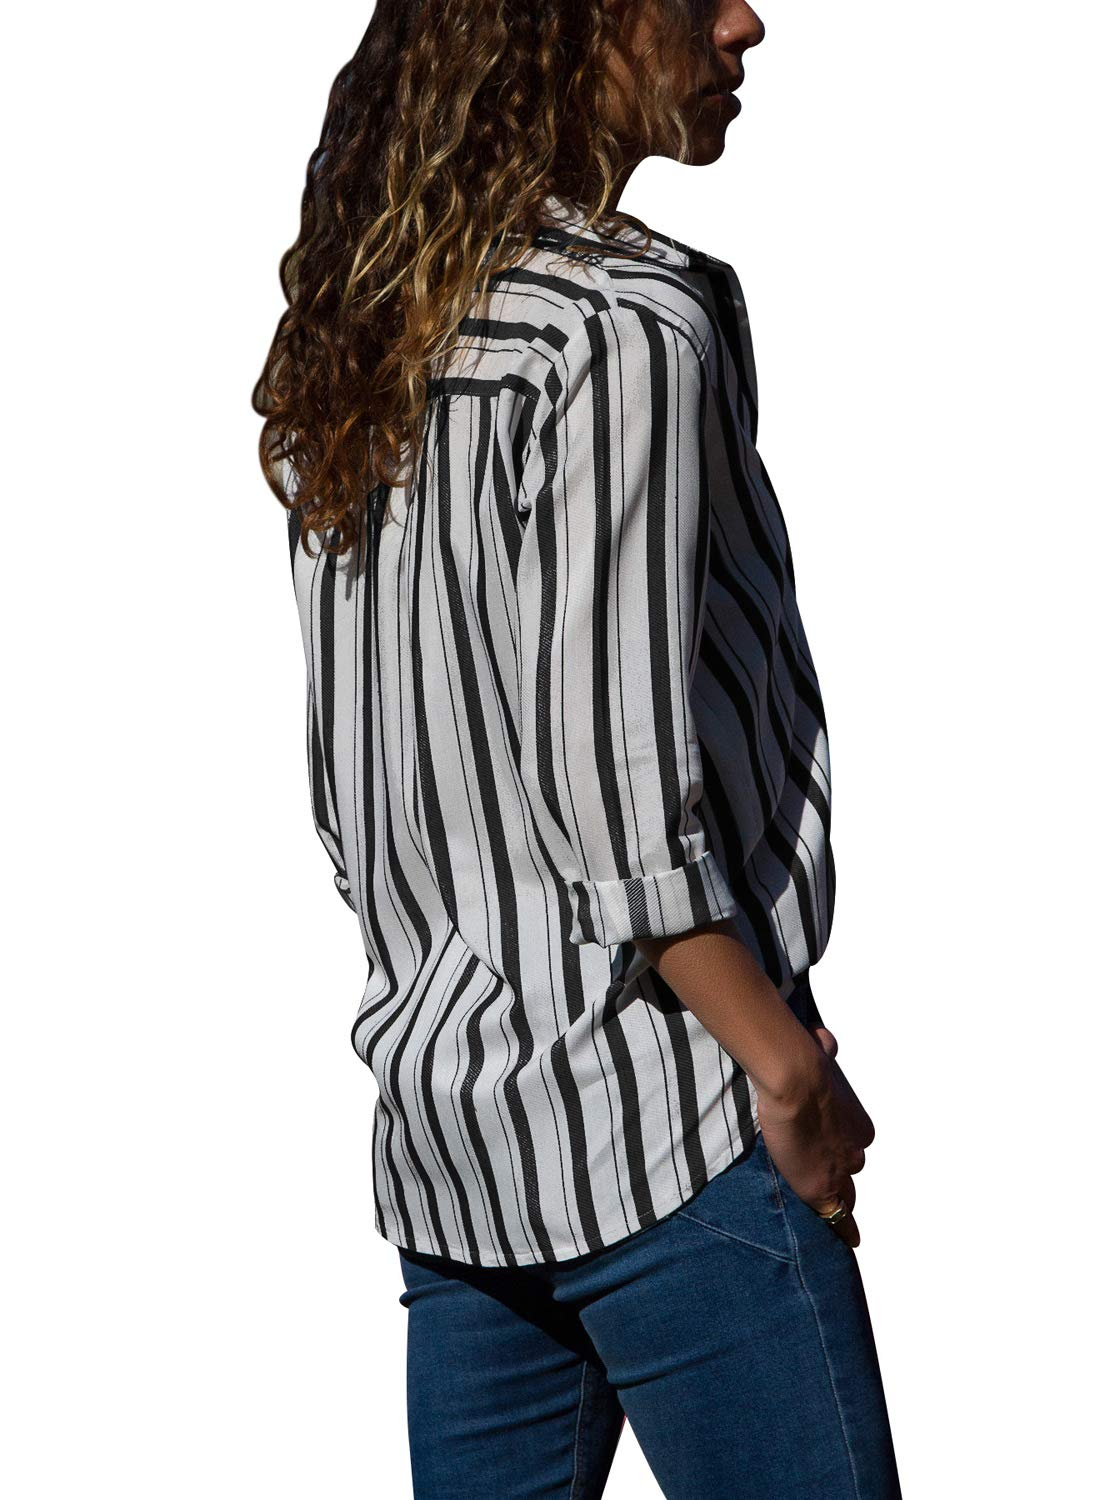 HOTAPEI Womens Casual V Neck Striped Chiffon Tops and Blouses 3 4 Long Sleeve Business Button Down Shirts Black and White Medium by HOTAPEI (Image #2)